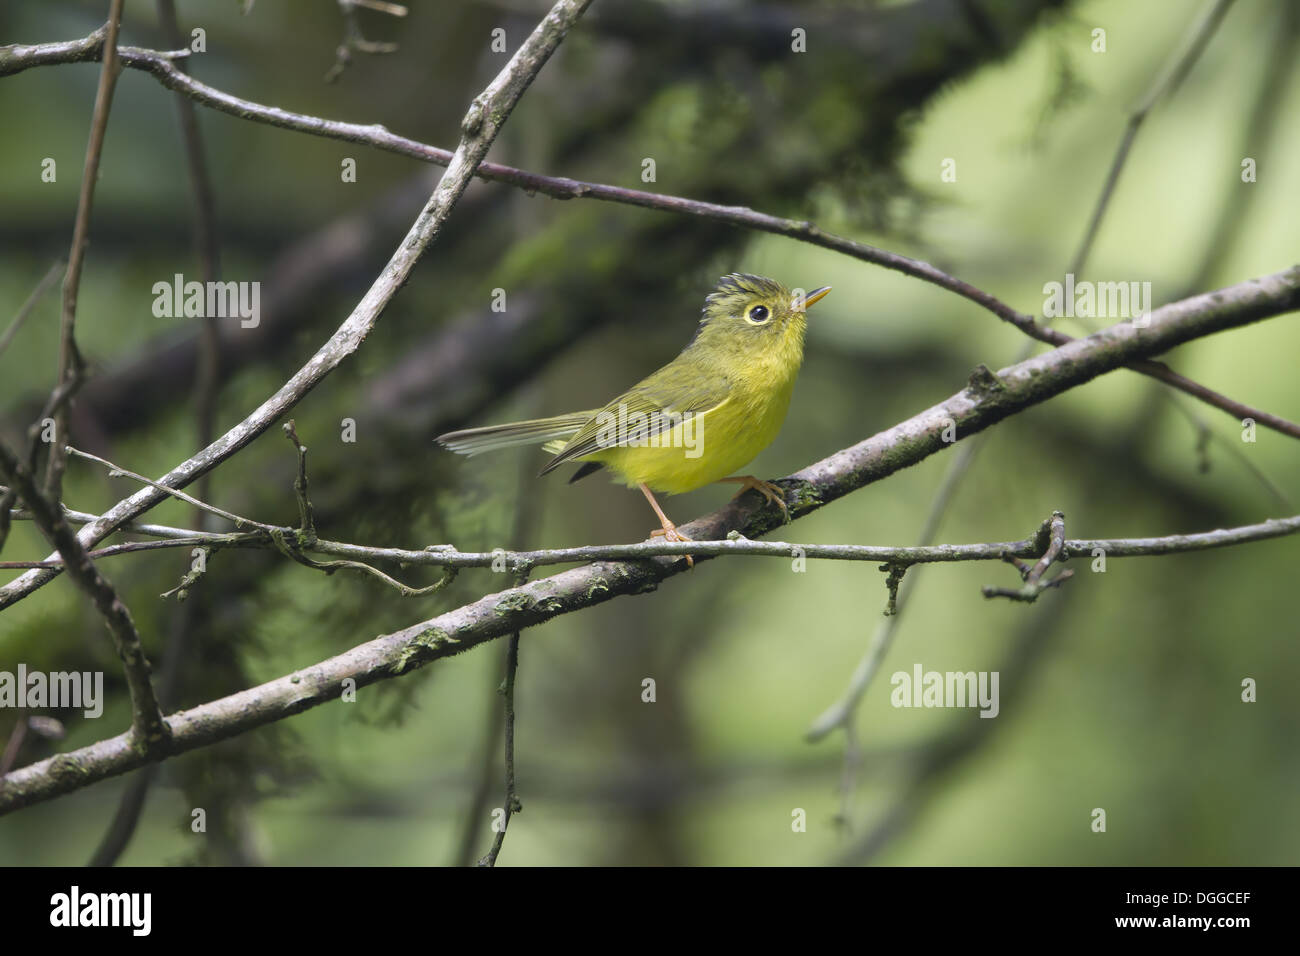 Whistler's Warbler (Seicercus whistleri) adult breeding plumage searching for prey items perched on twig Kathmandu Stock Photo